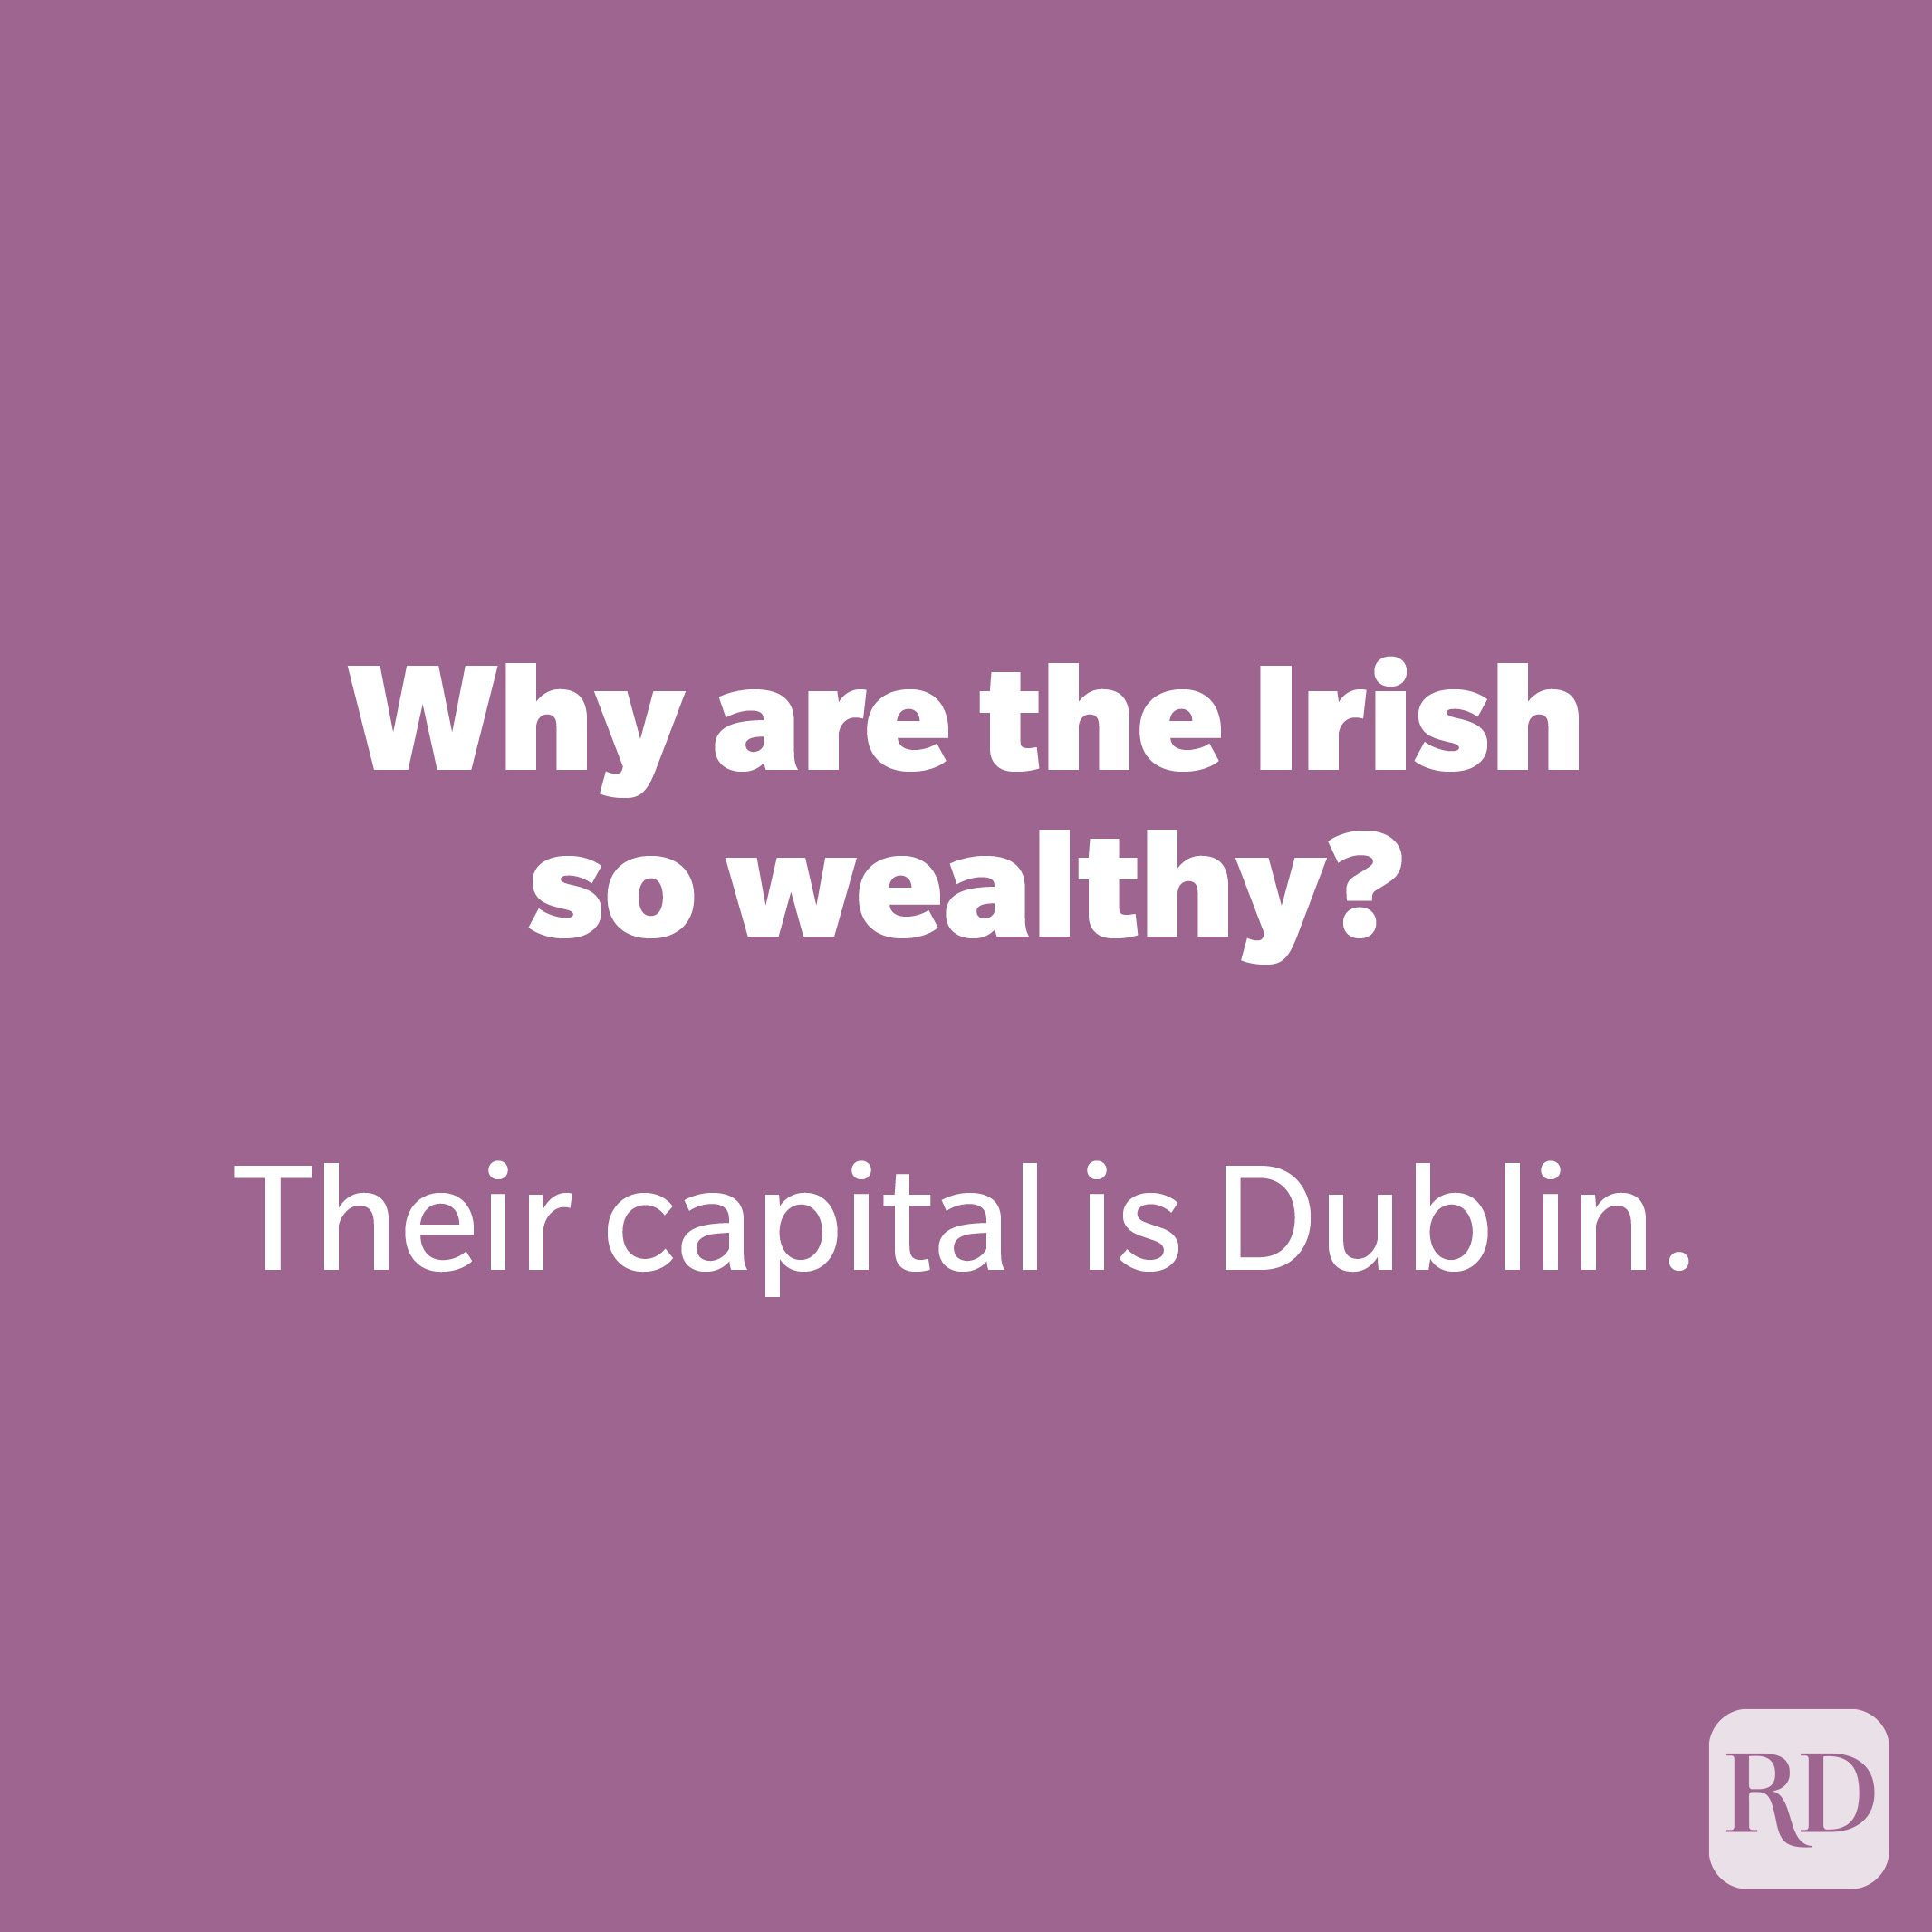 Why are the Irish so wealthy?